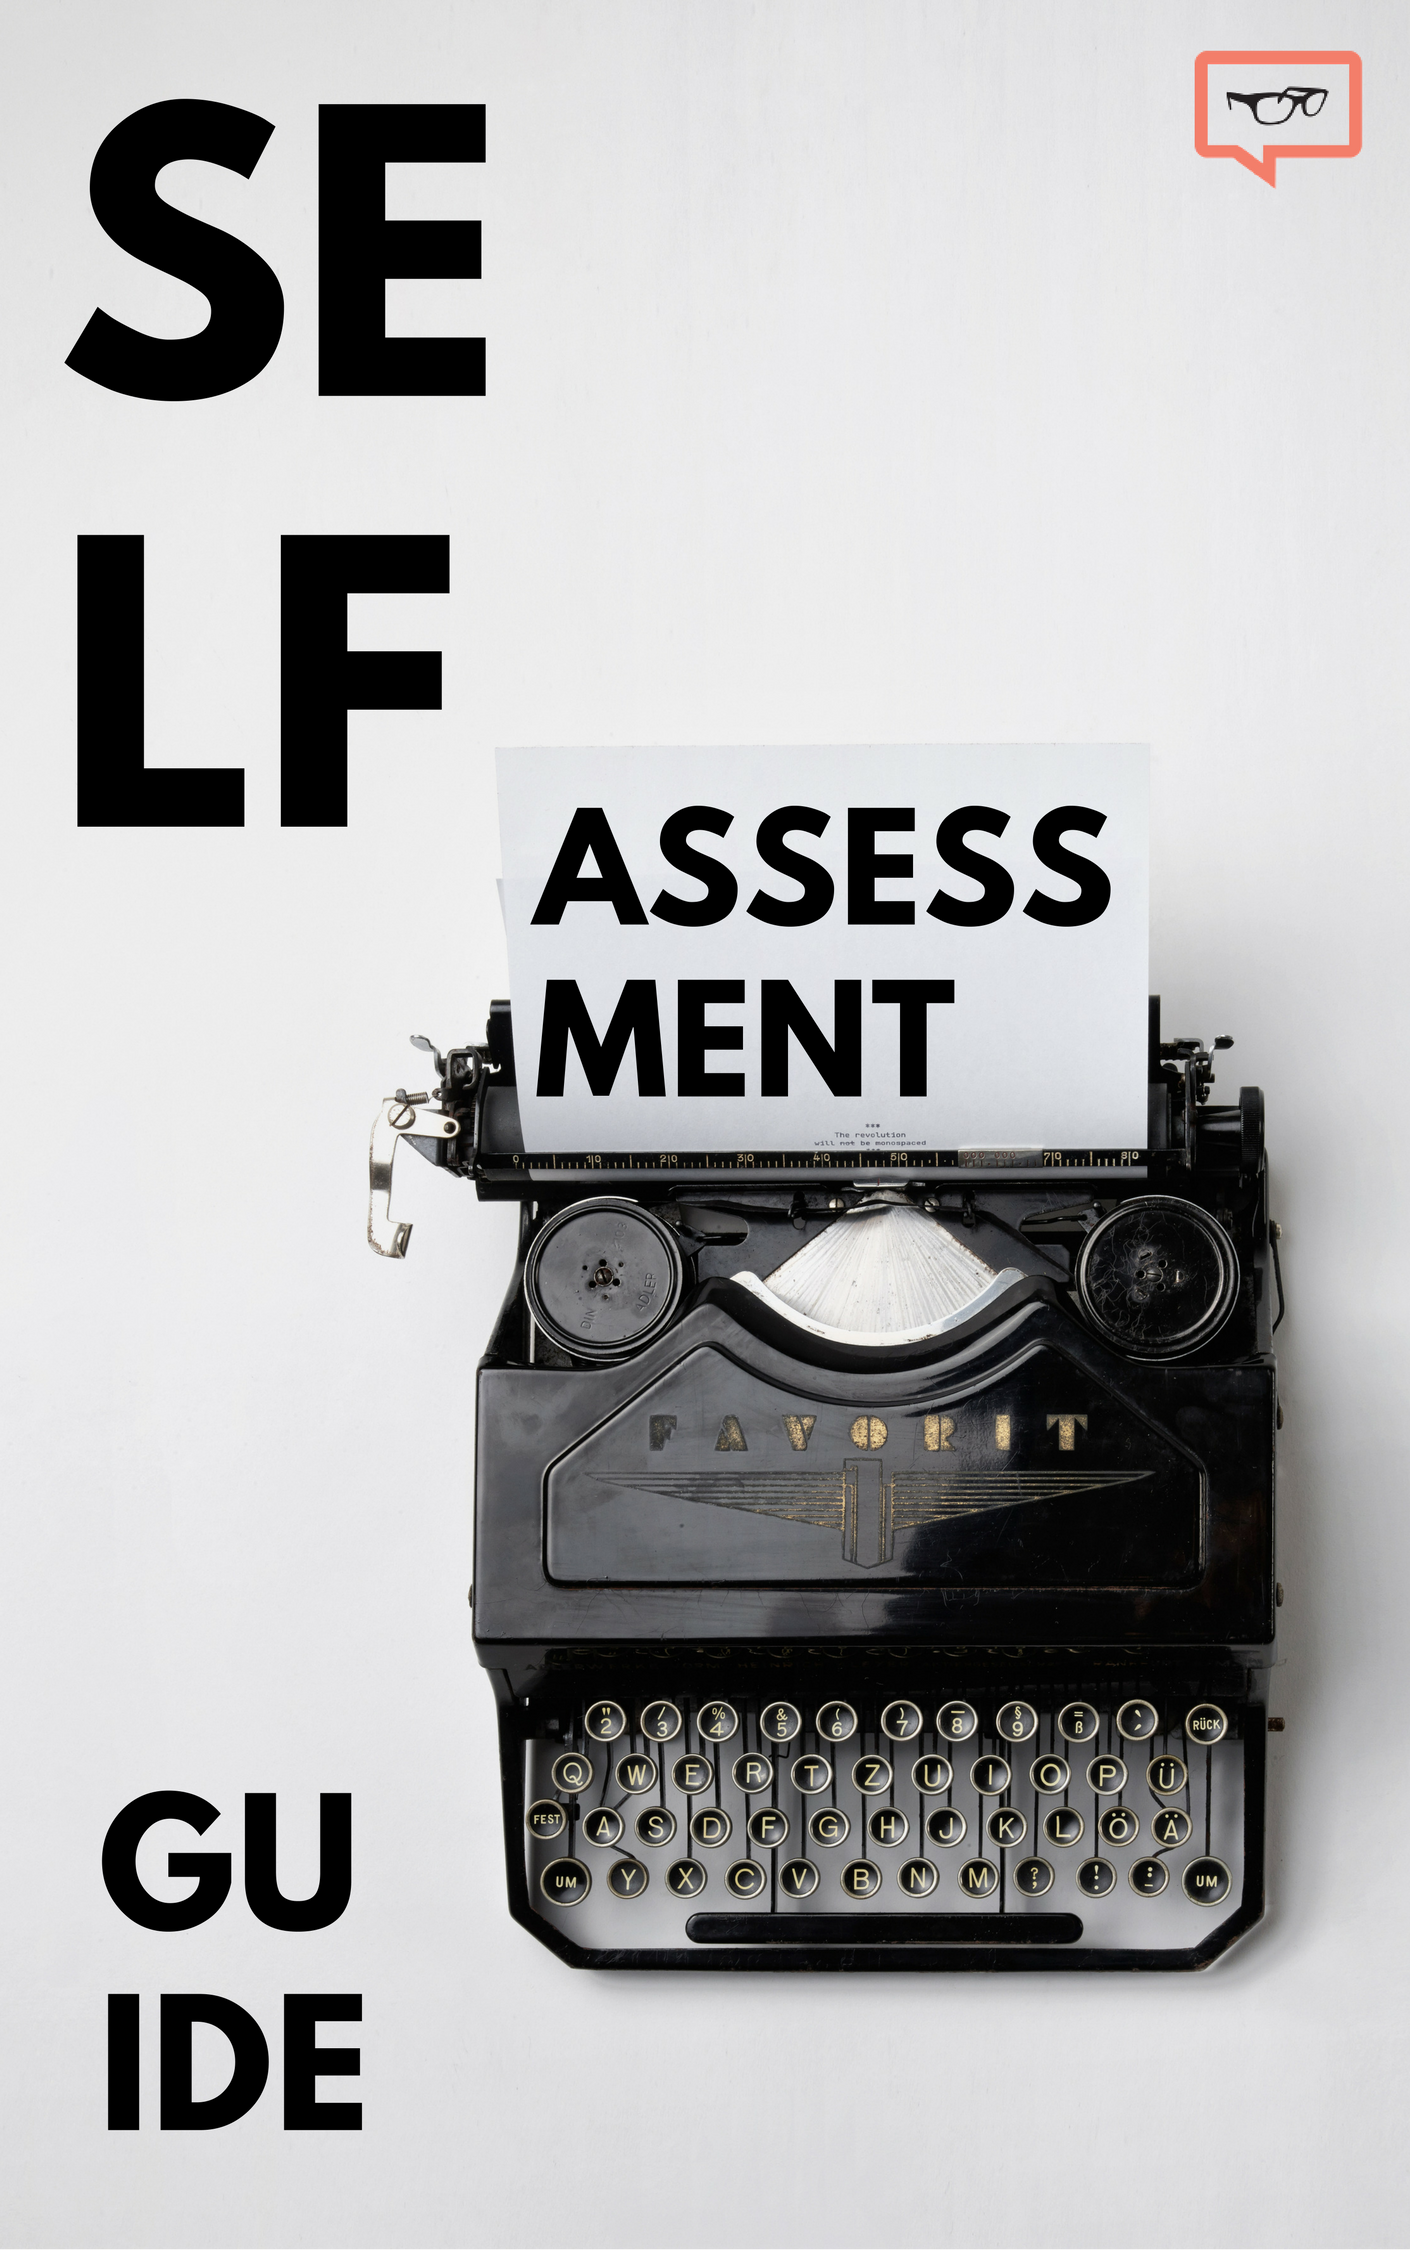 Self-Assessment Guide - A guide to assess your public speaking and best ways to improve for each level of skill from beginner to expert.